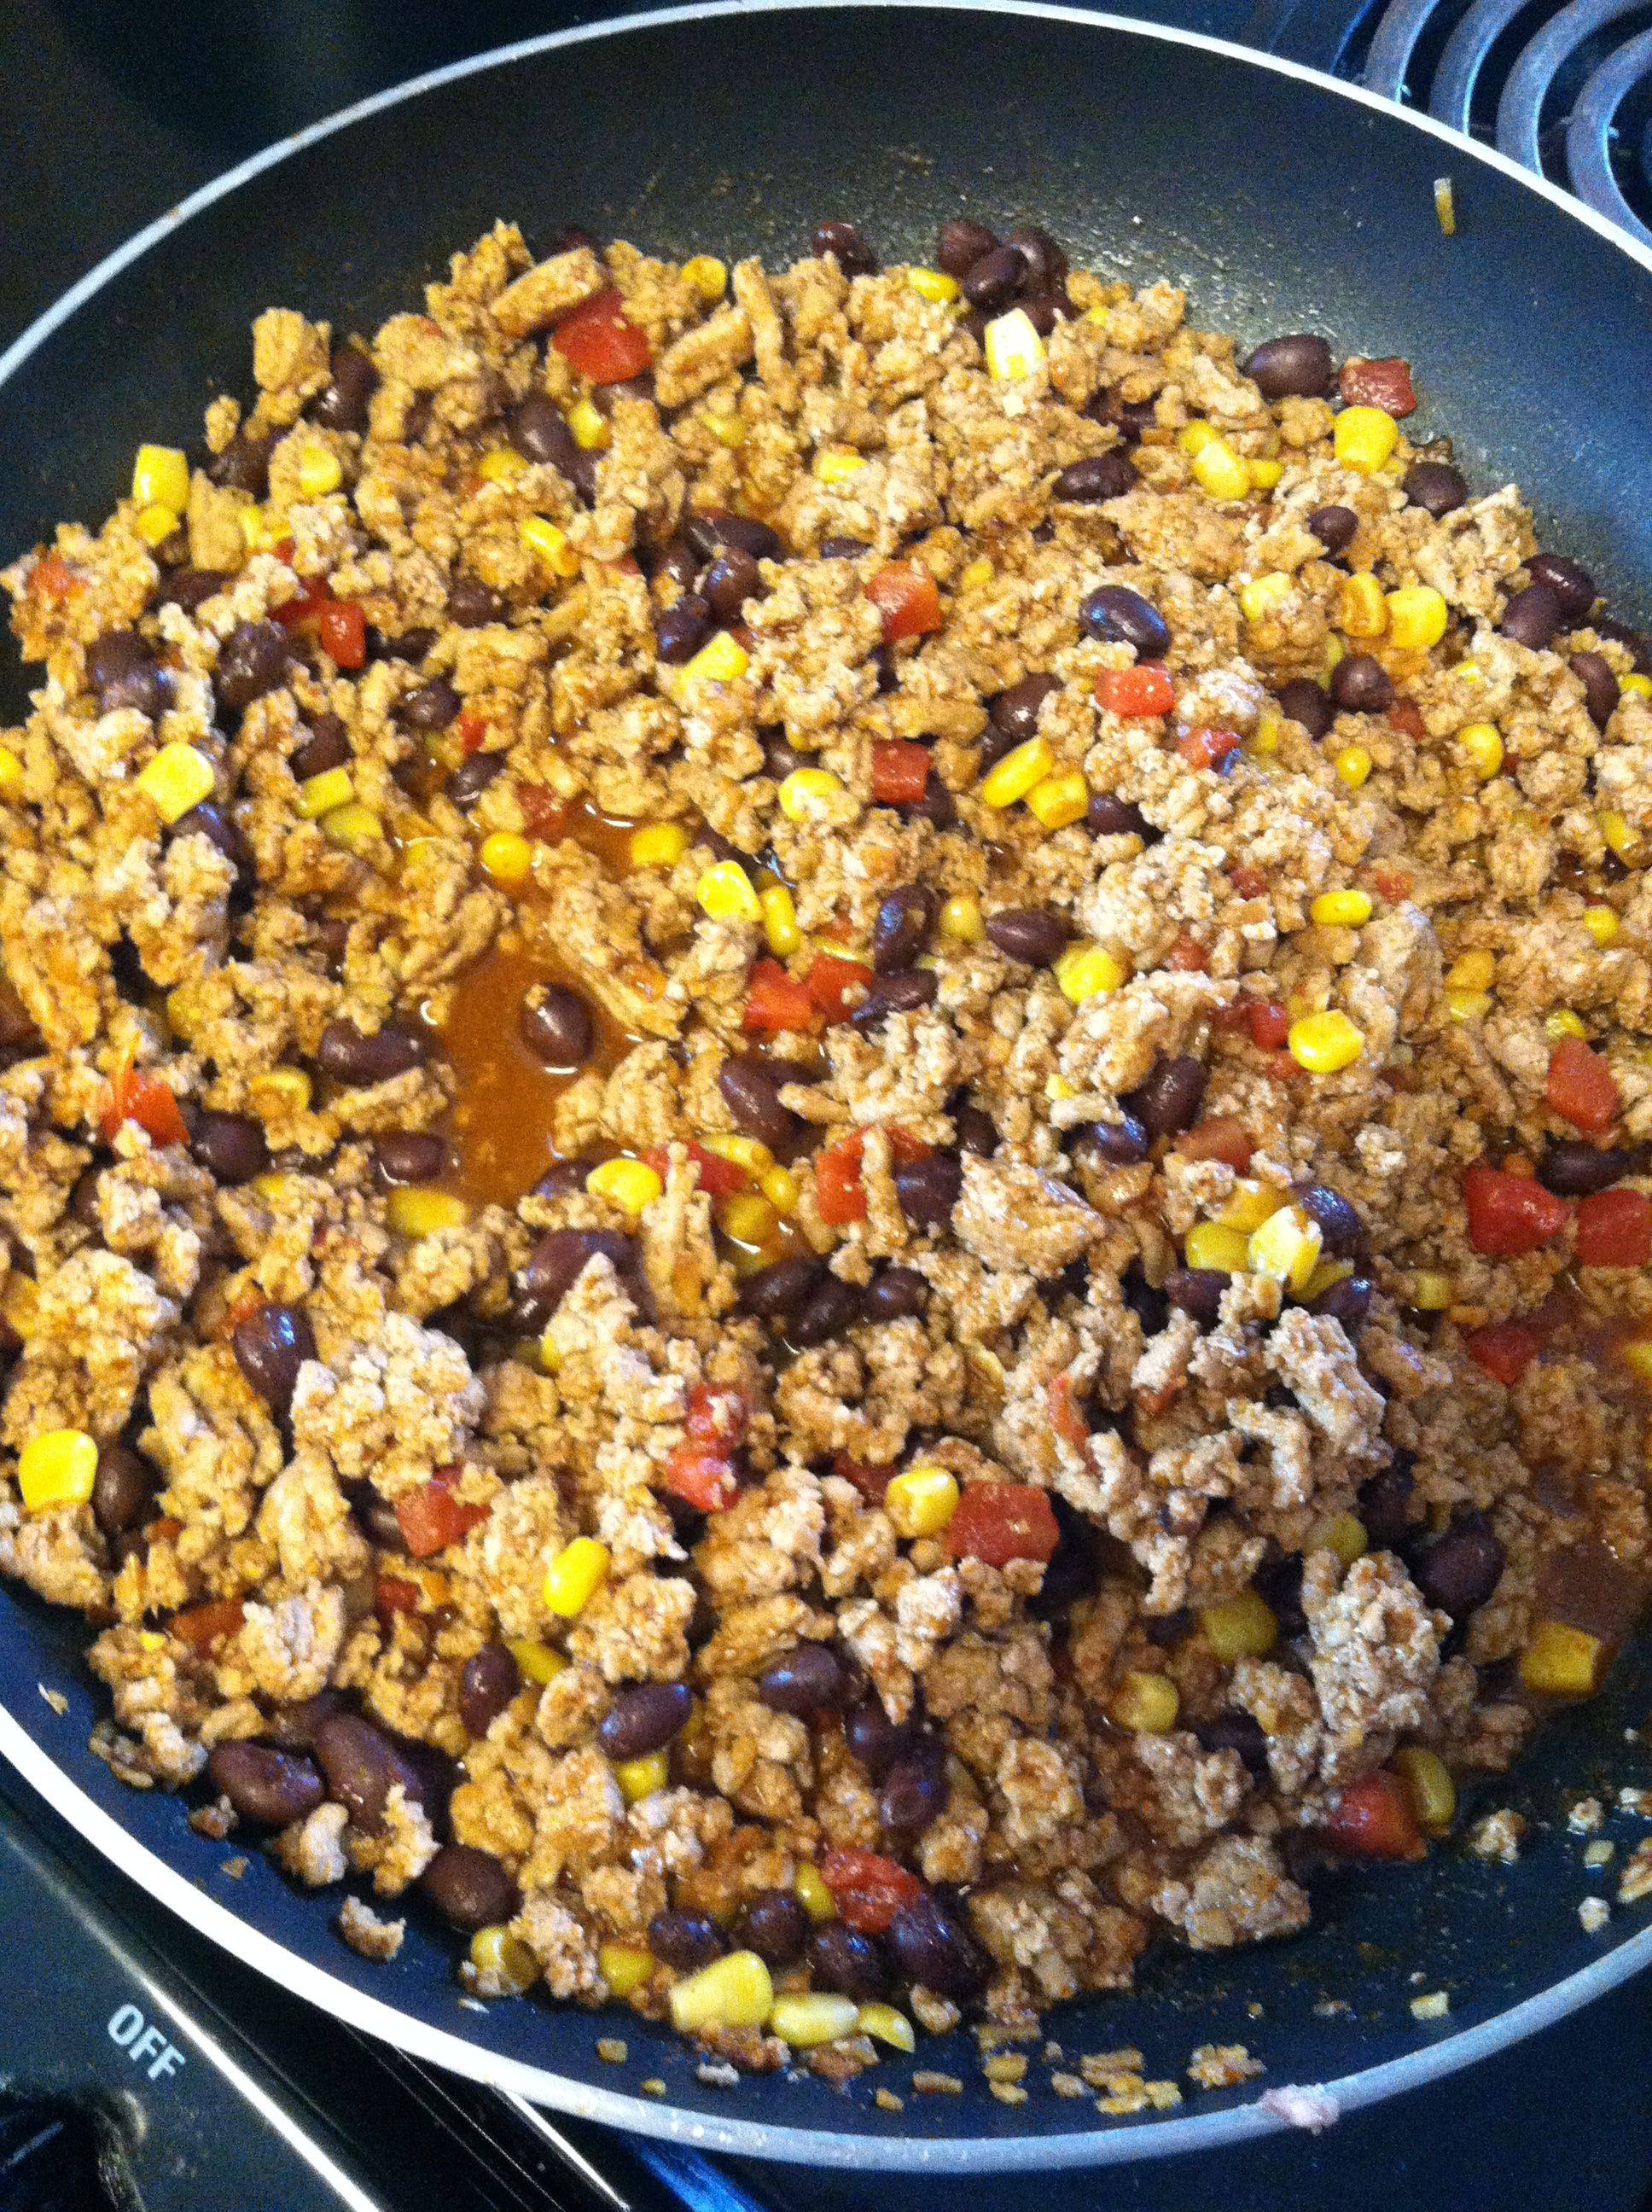 Easy Mexican Night Ground Beef Turkey Black Beans Corn Diced Tomatoes And Taco Seasoning Serve With Chips Or Taco Shell Or Beef Recipes Easy Mexican Food